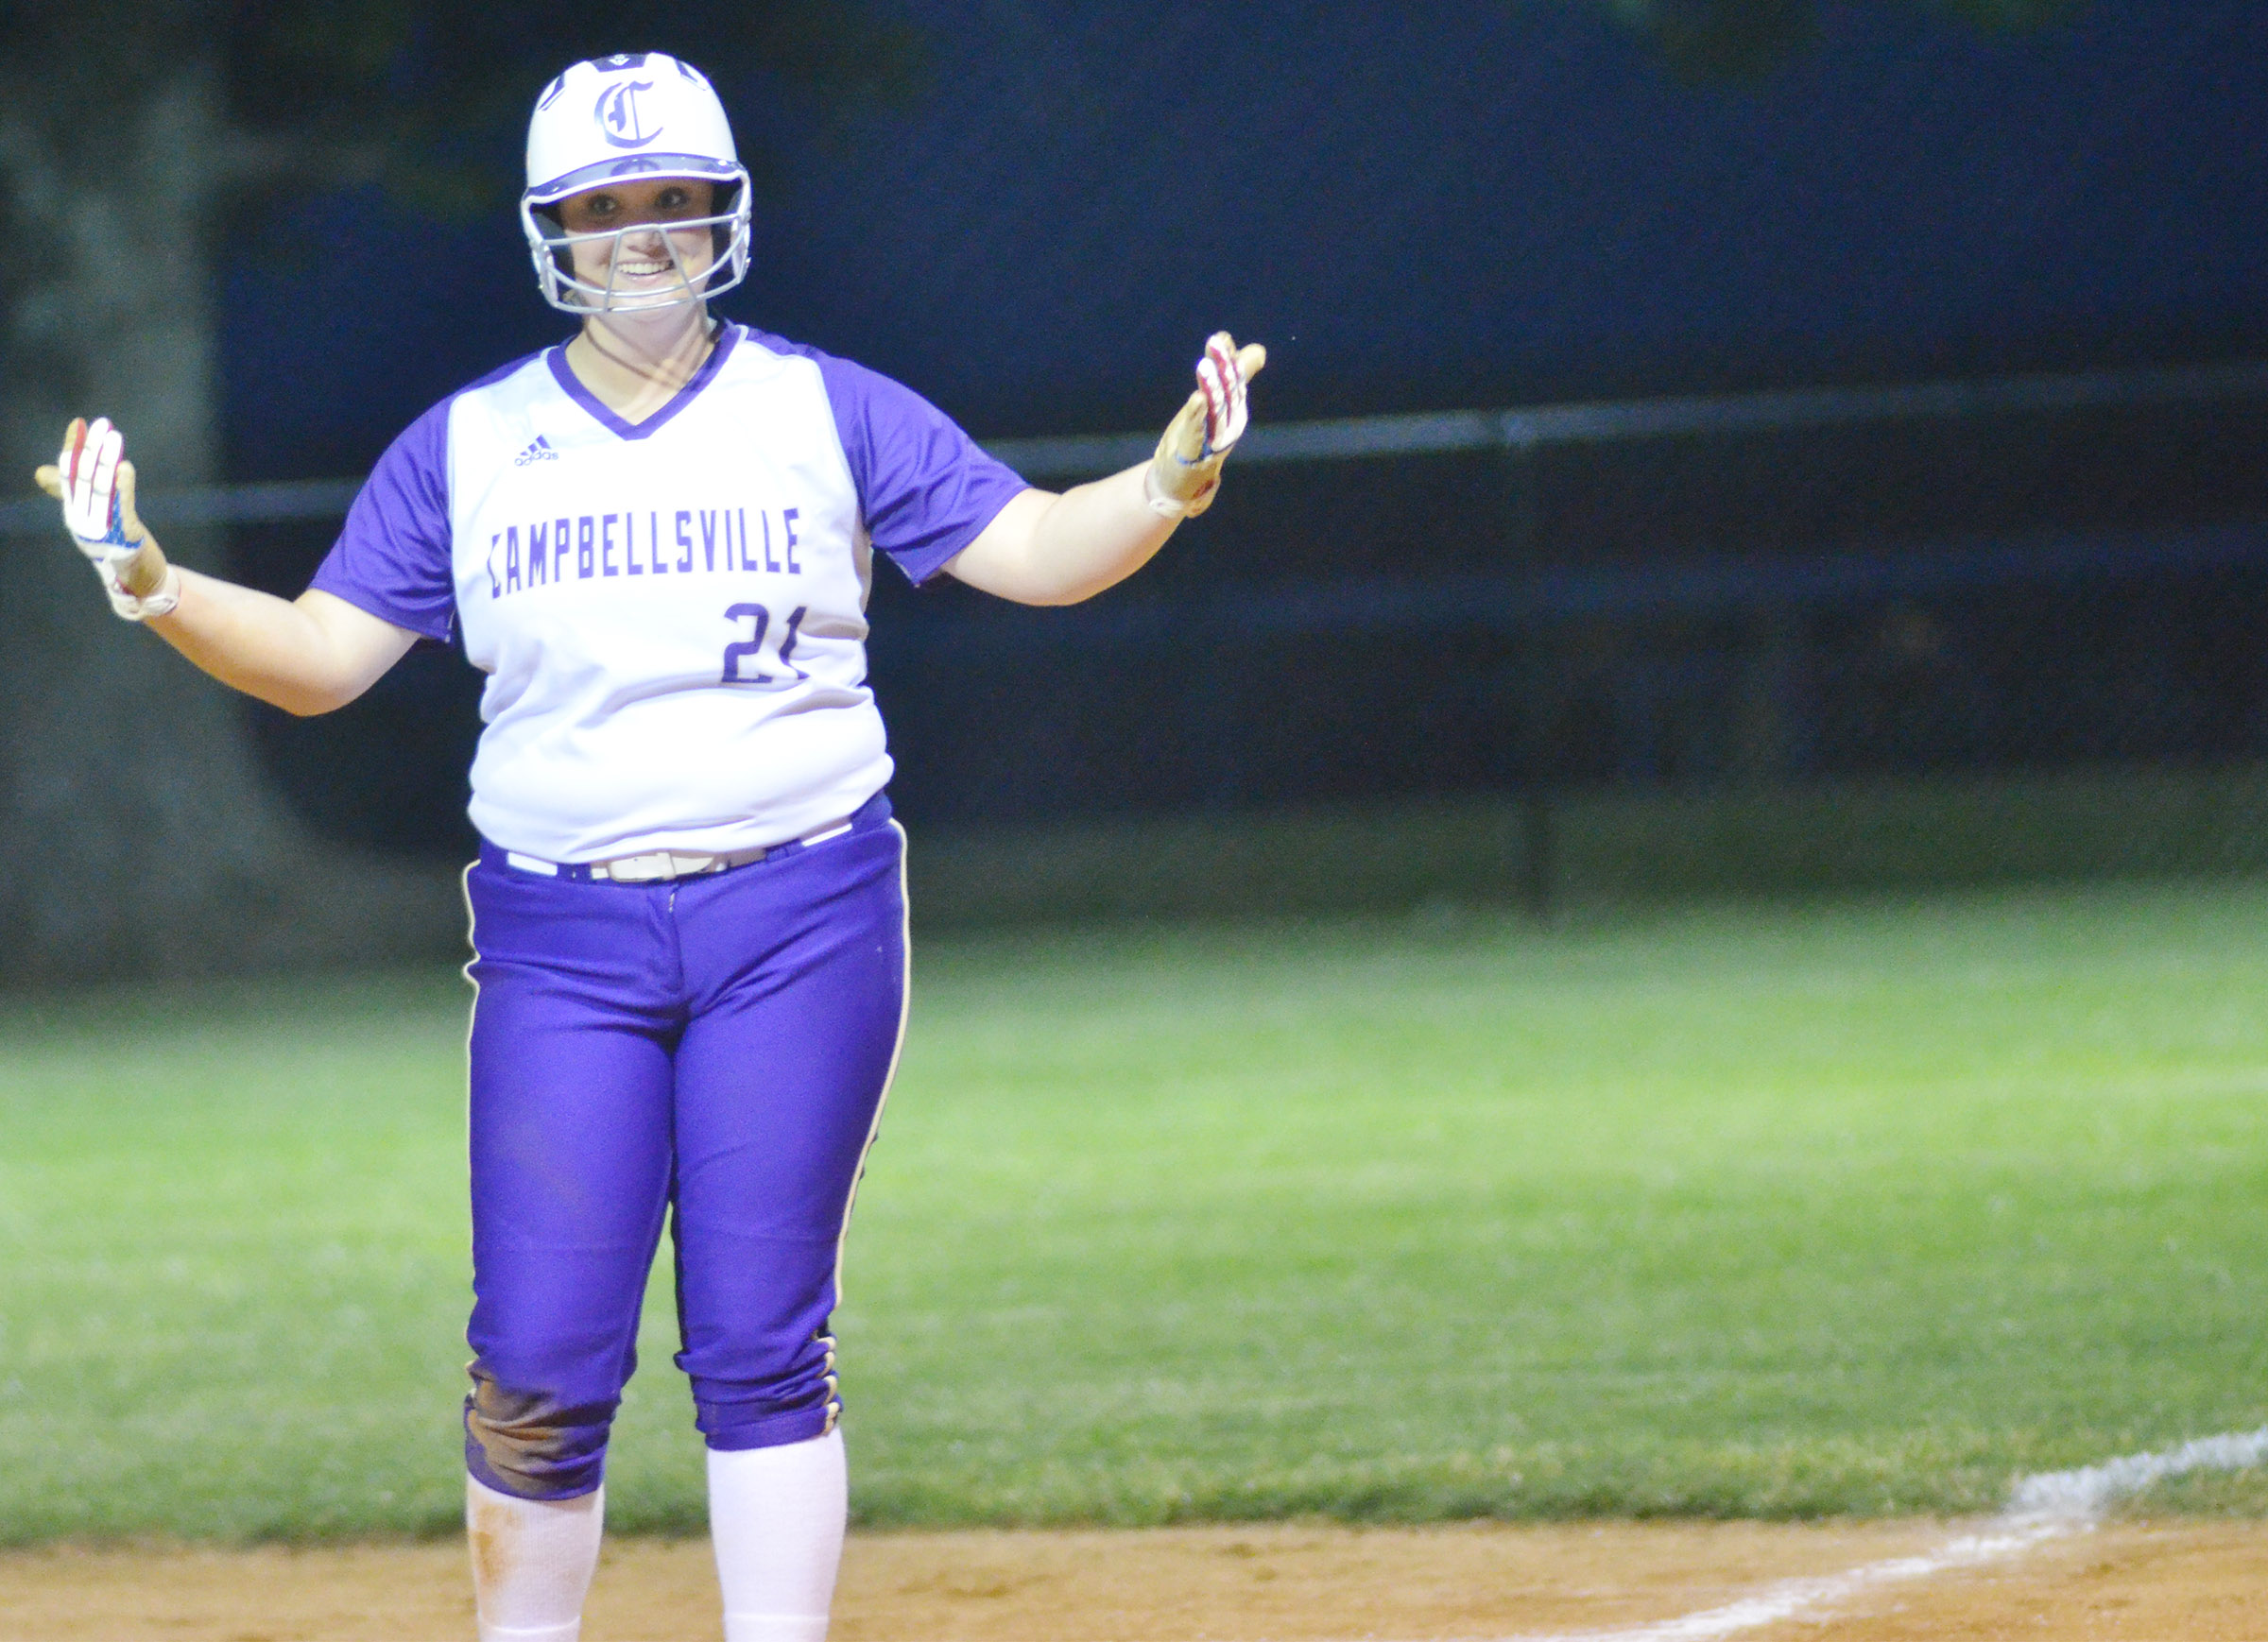 CHS senior Brenna Wethington calls for some cheering after she gets a hit.